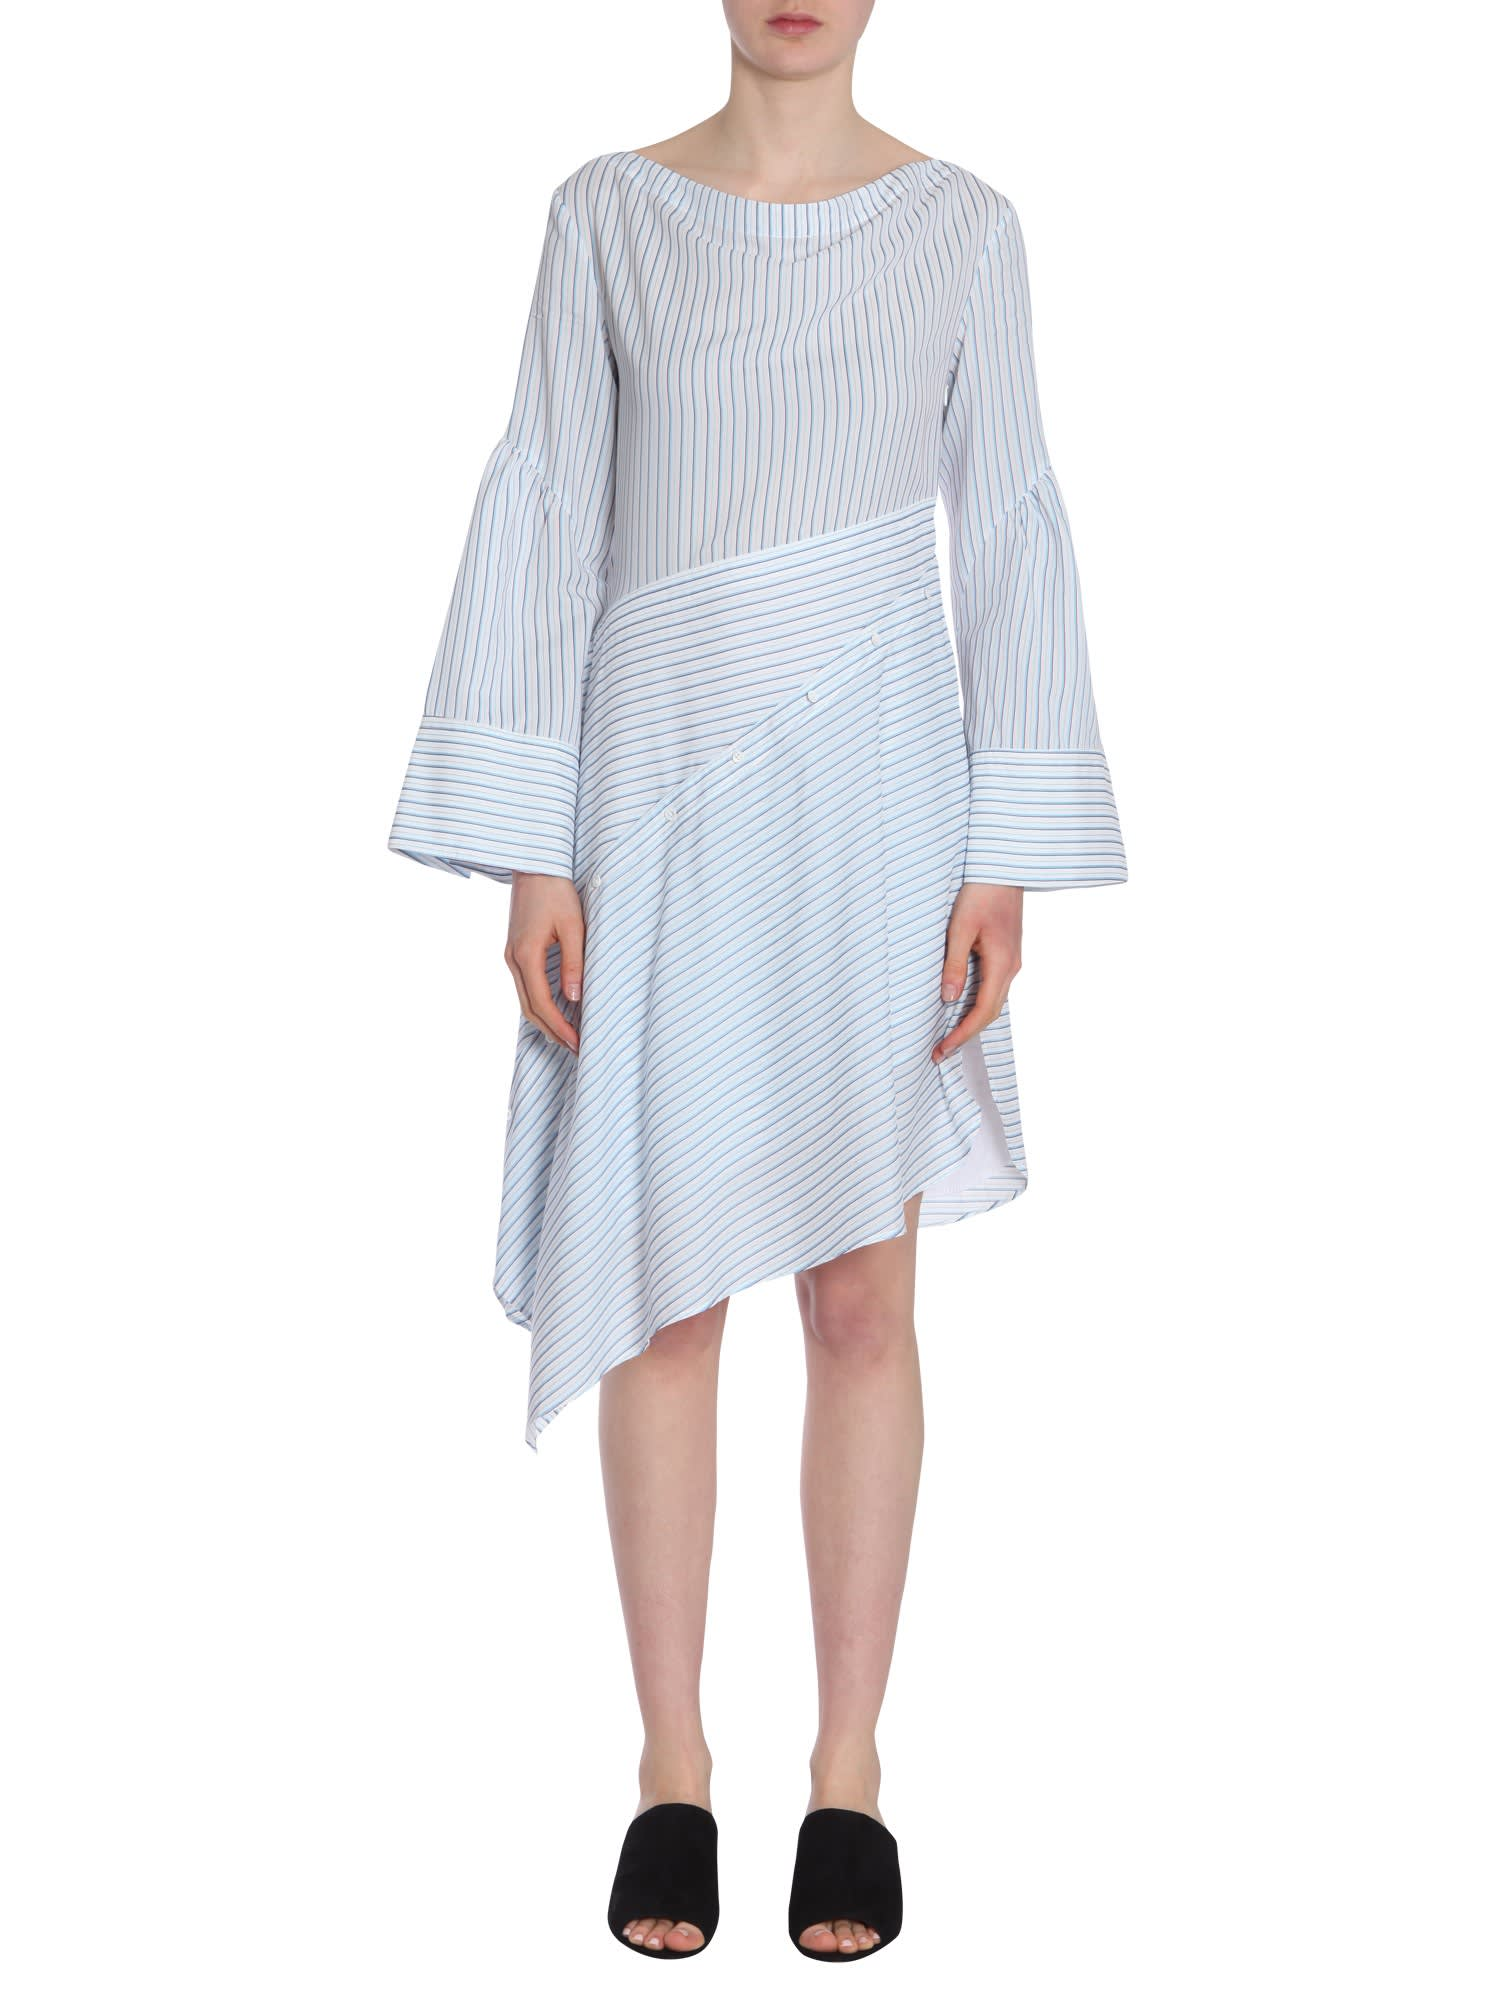 Buy 3.1 Phillip Lim Striped Shirt Dress online, shop 3.1 Phillip Lim with free shipping